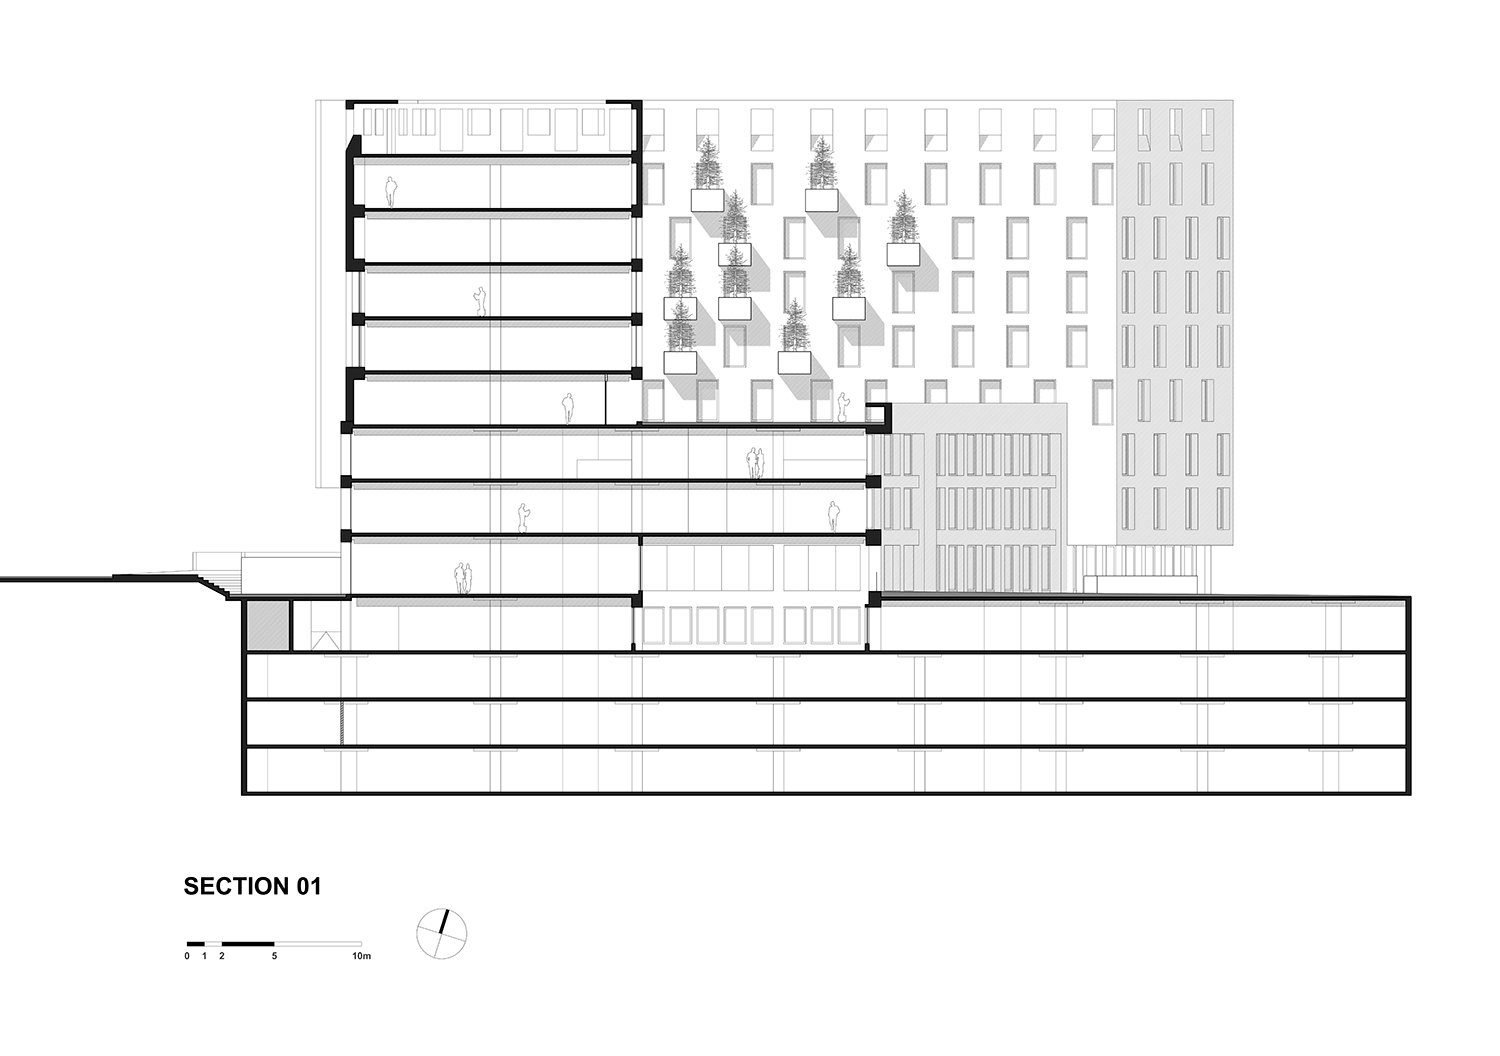 SECTION 01 GONZALO MARDONES ARQUITECTOS}